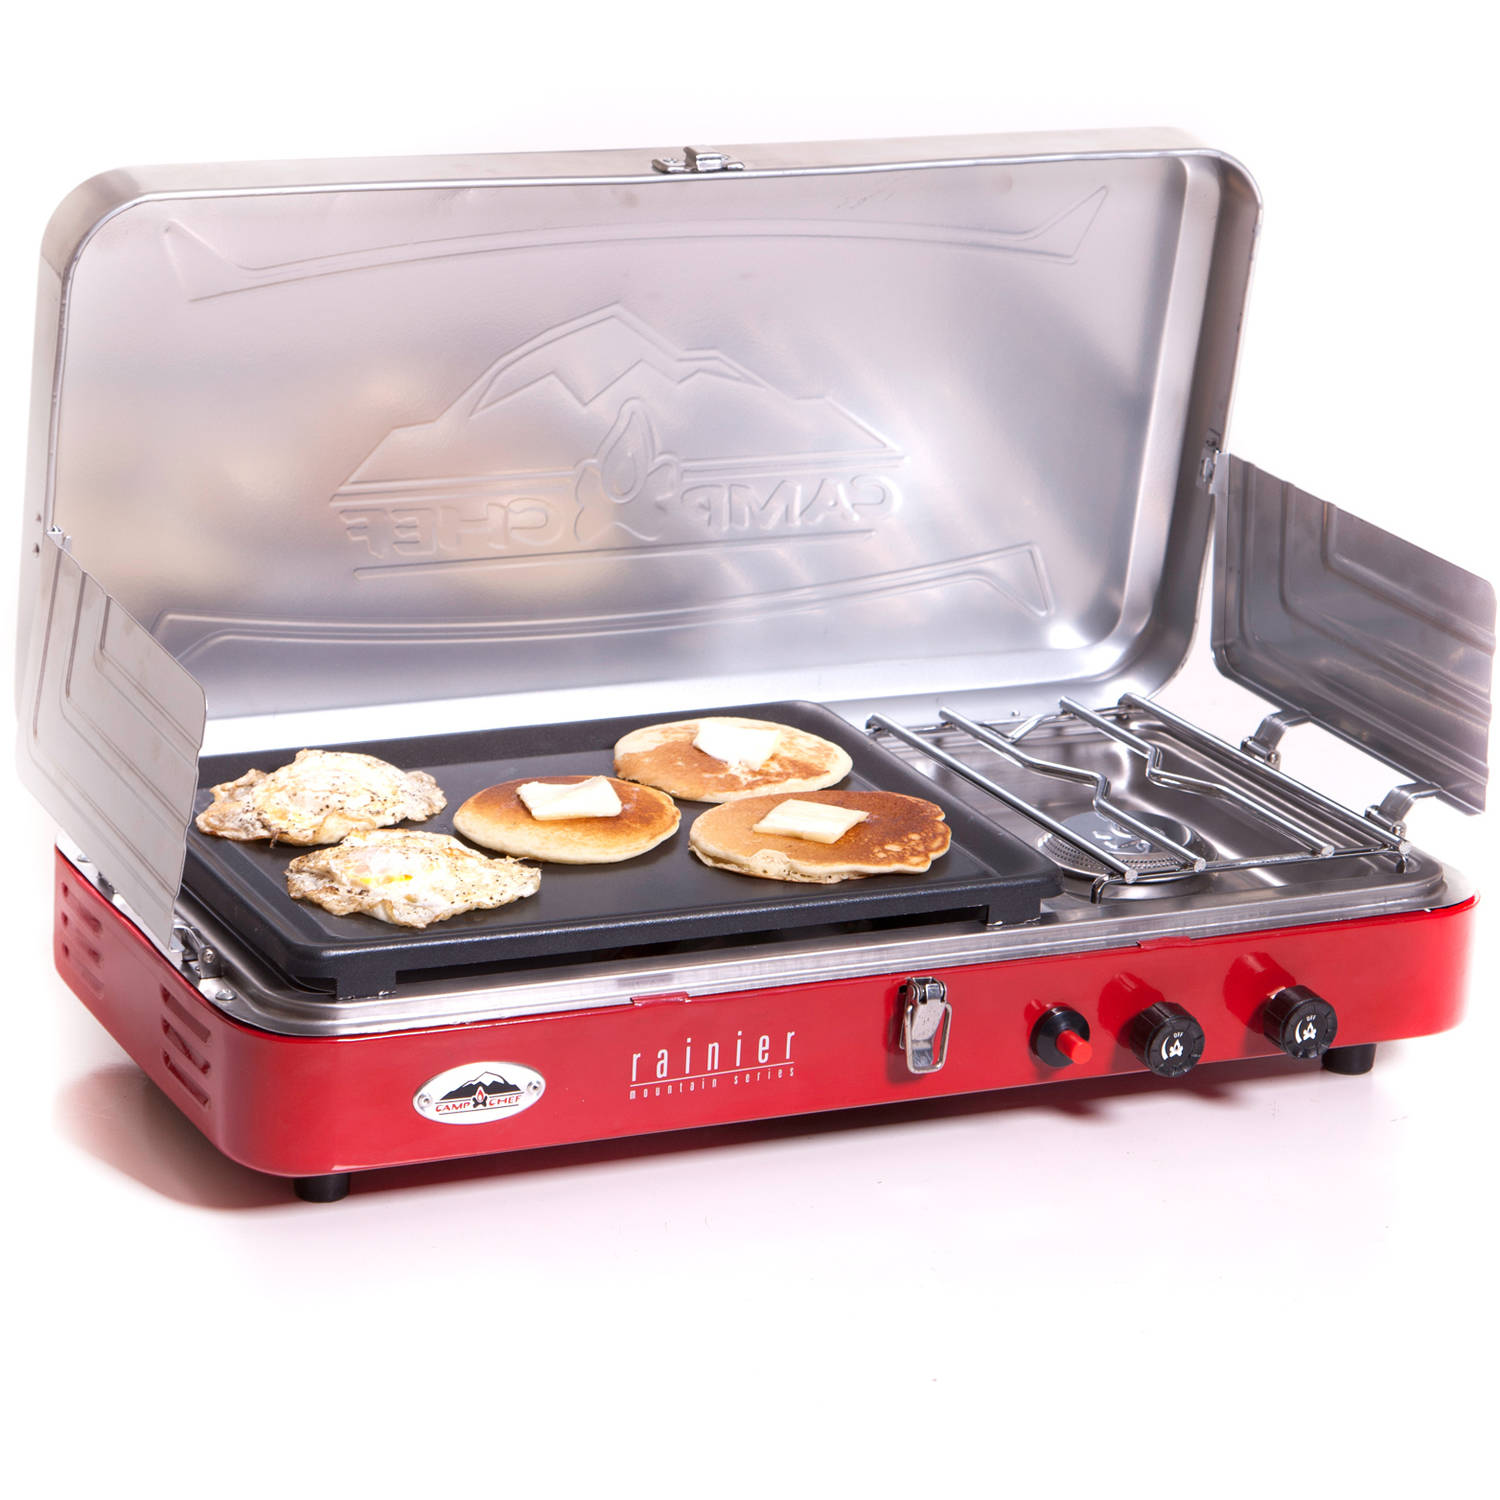 Camp Chef Rainier 2-Burner Stove with Griddle, Red, Red by Camp Chef